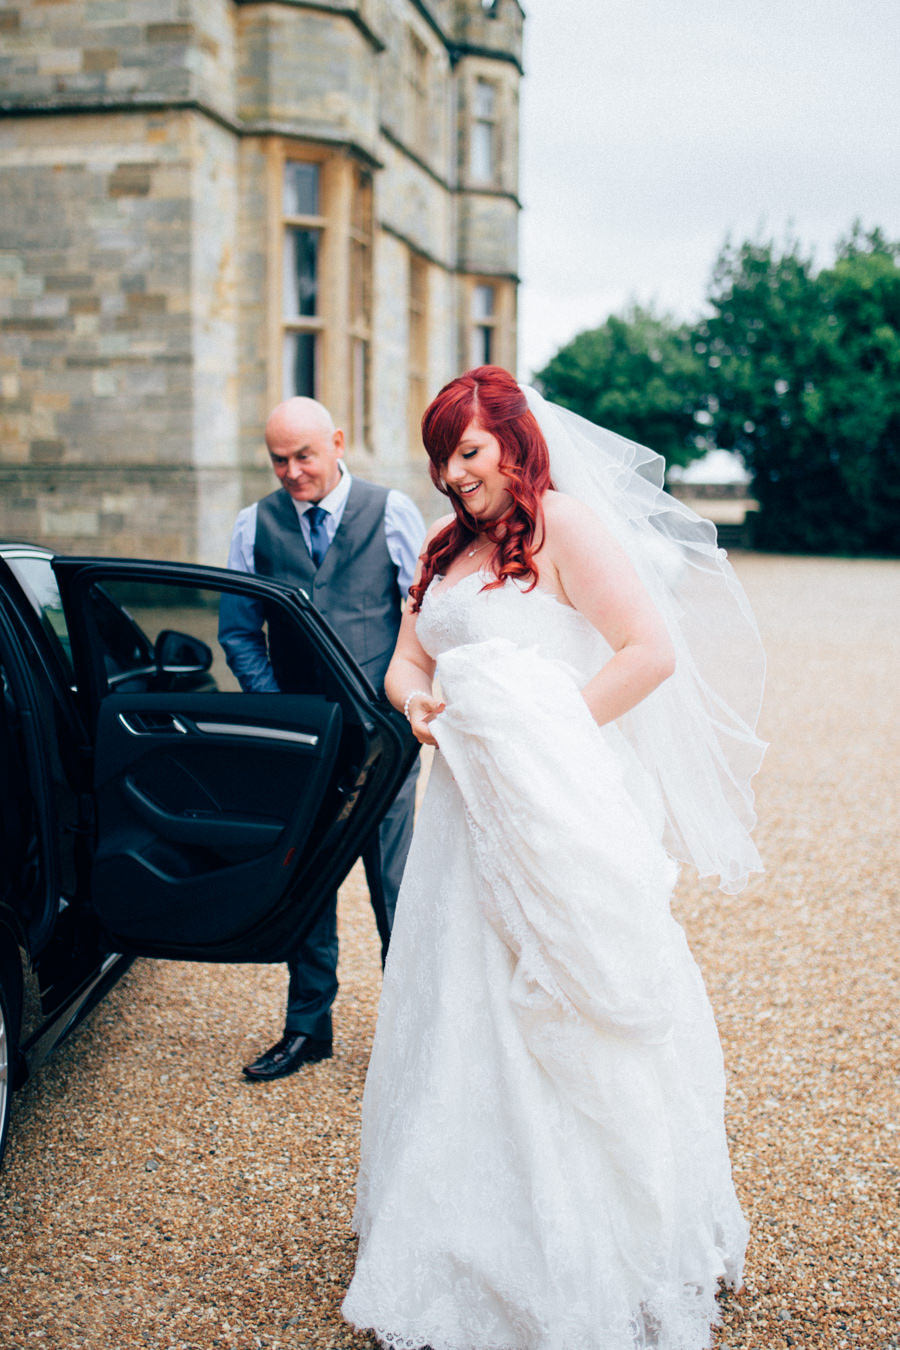 A stunning wedding in Hastings with a gorgeous redhead bride, images by Nikki van der Molen (19)